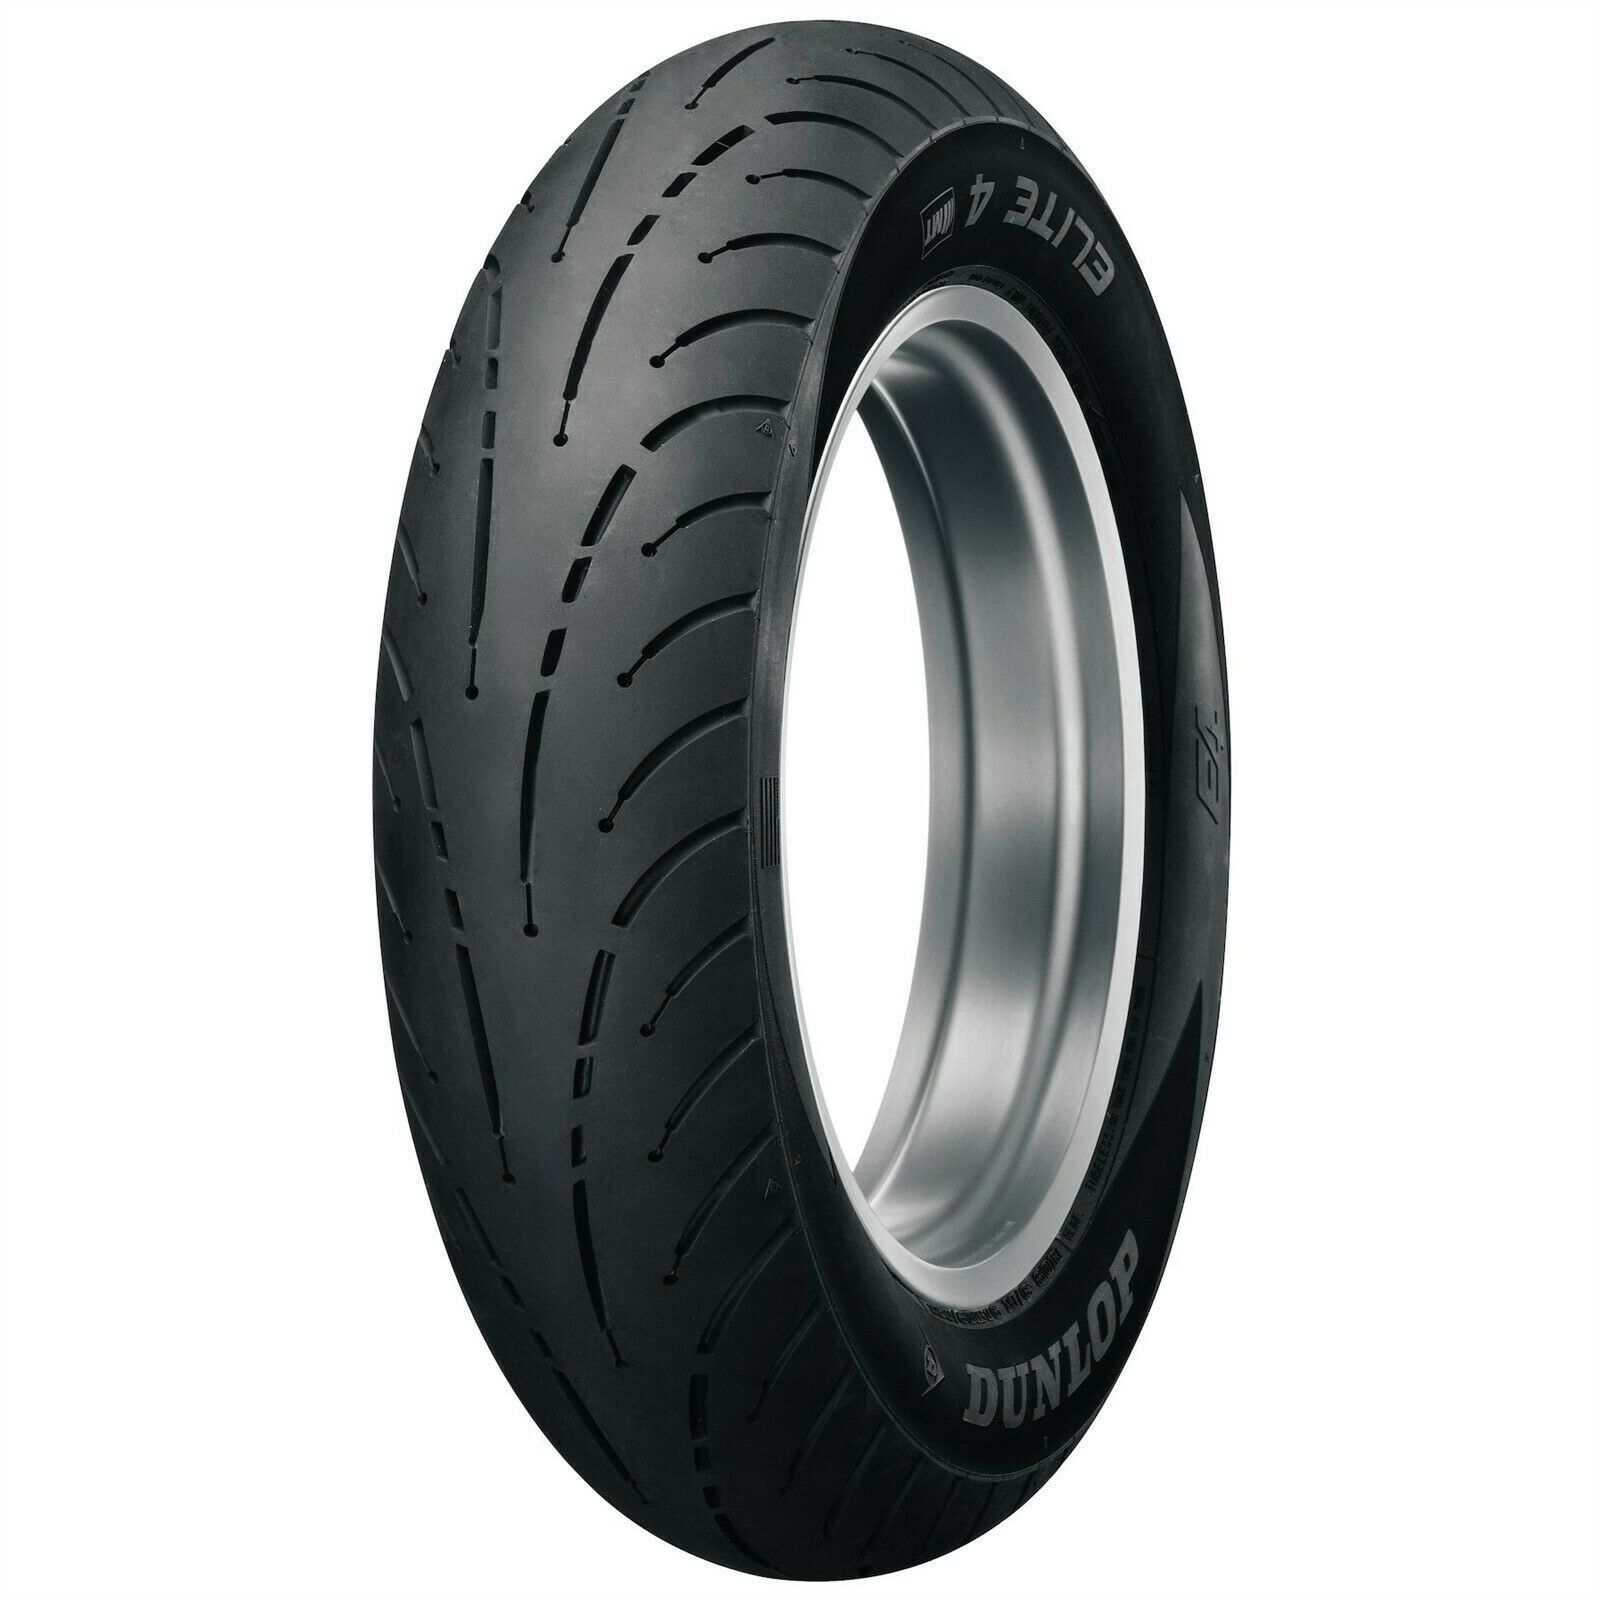 New Dunlop Elite 4 250/40R-18 Radial Rear Motorcycle Tire 81V High Mileage